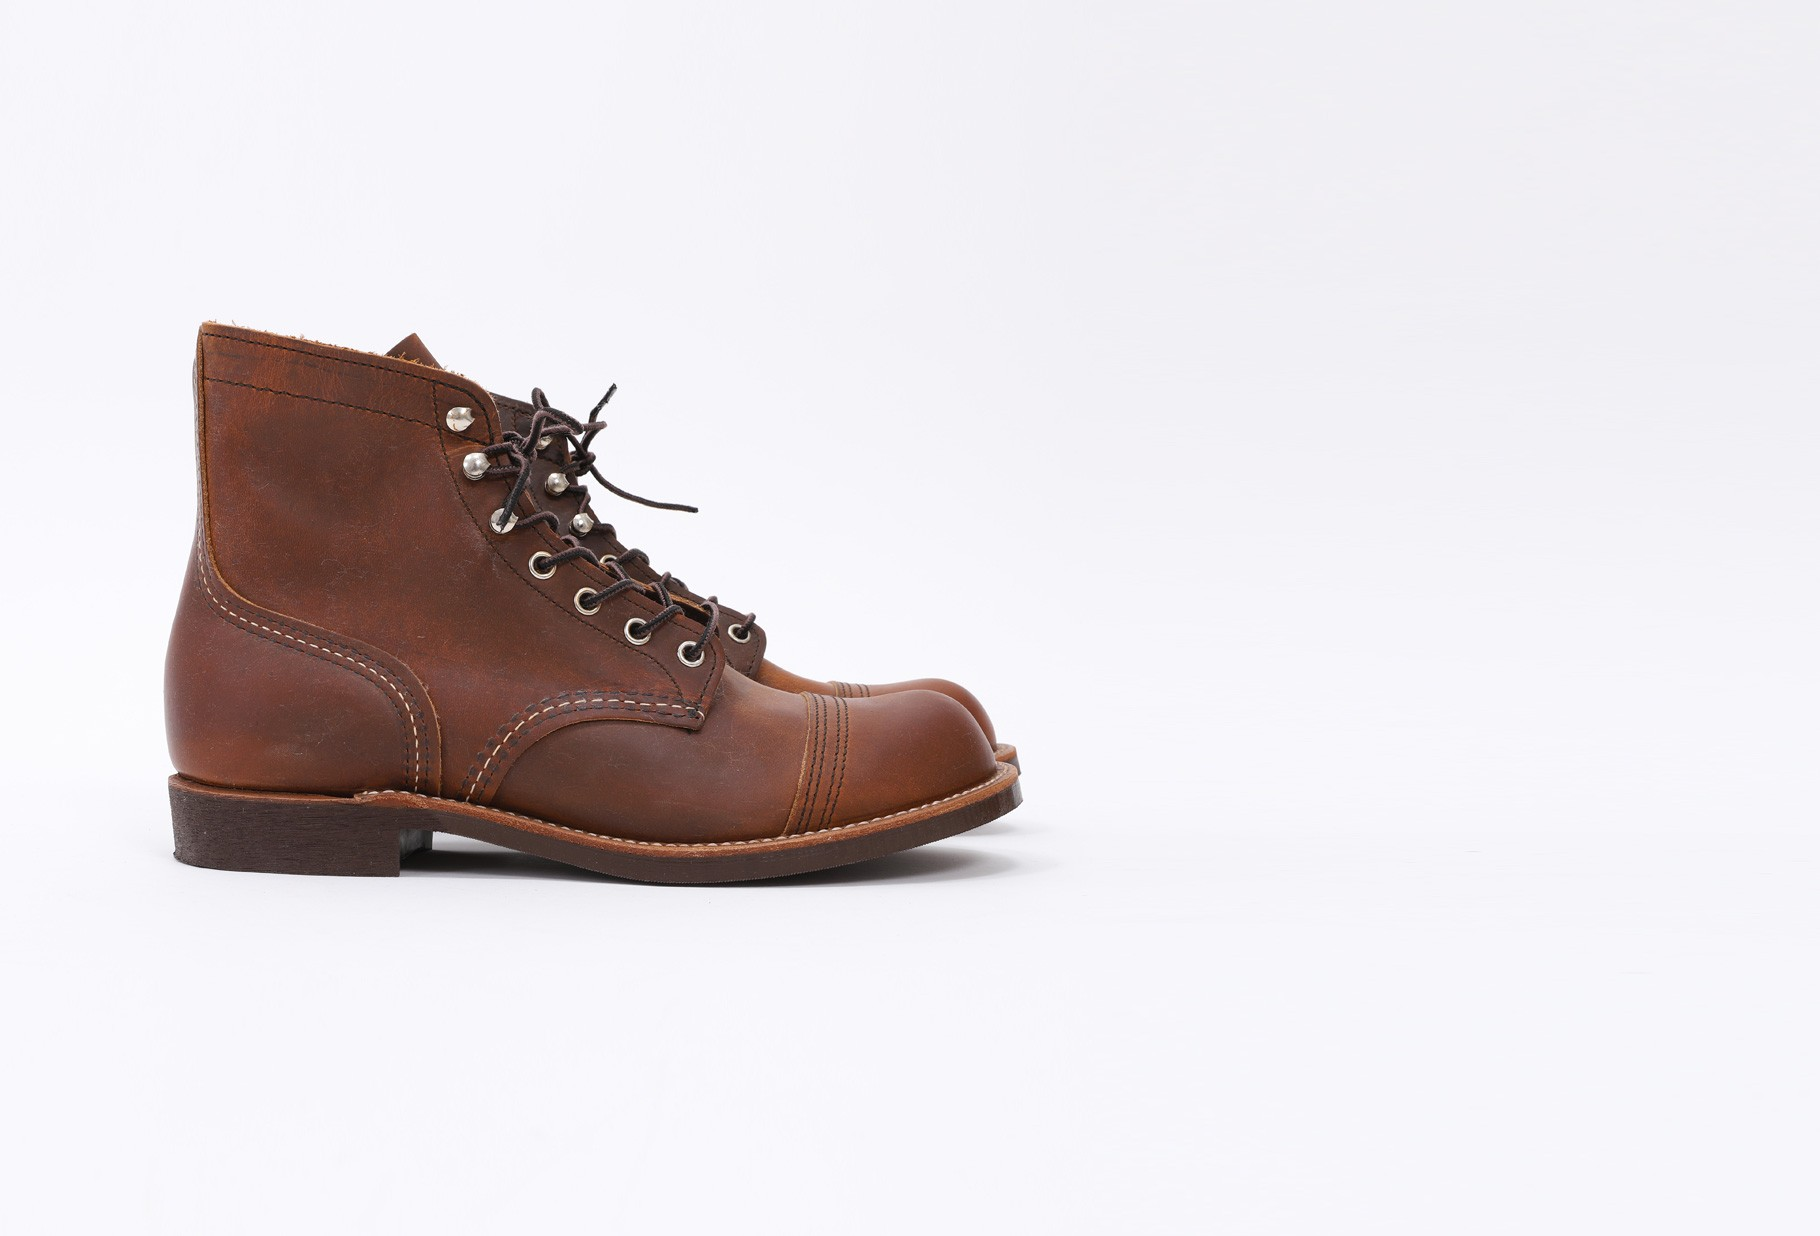 RED WING / Iron ranger style no.8085 Copper